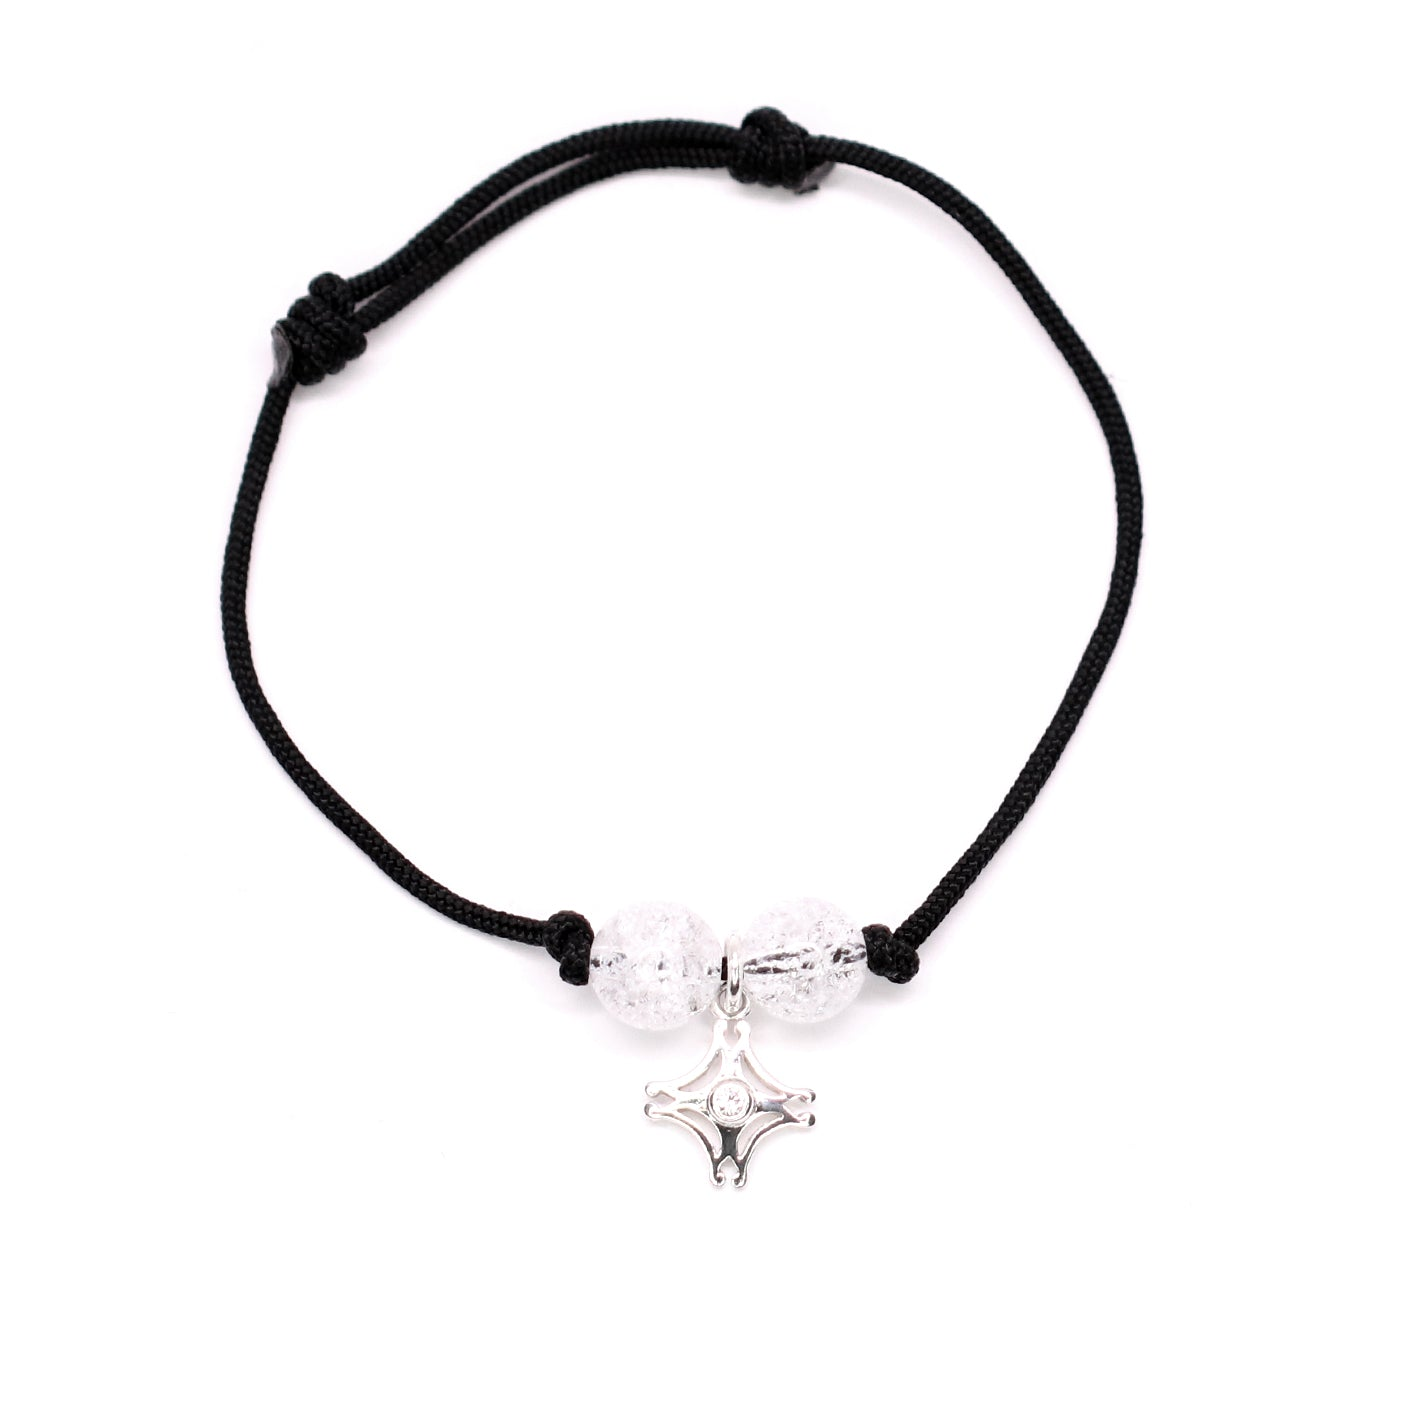 Insignia Emblema Rock Crystal - Black Rope